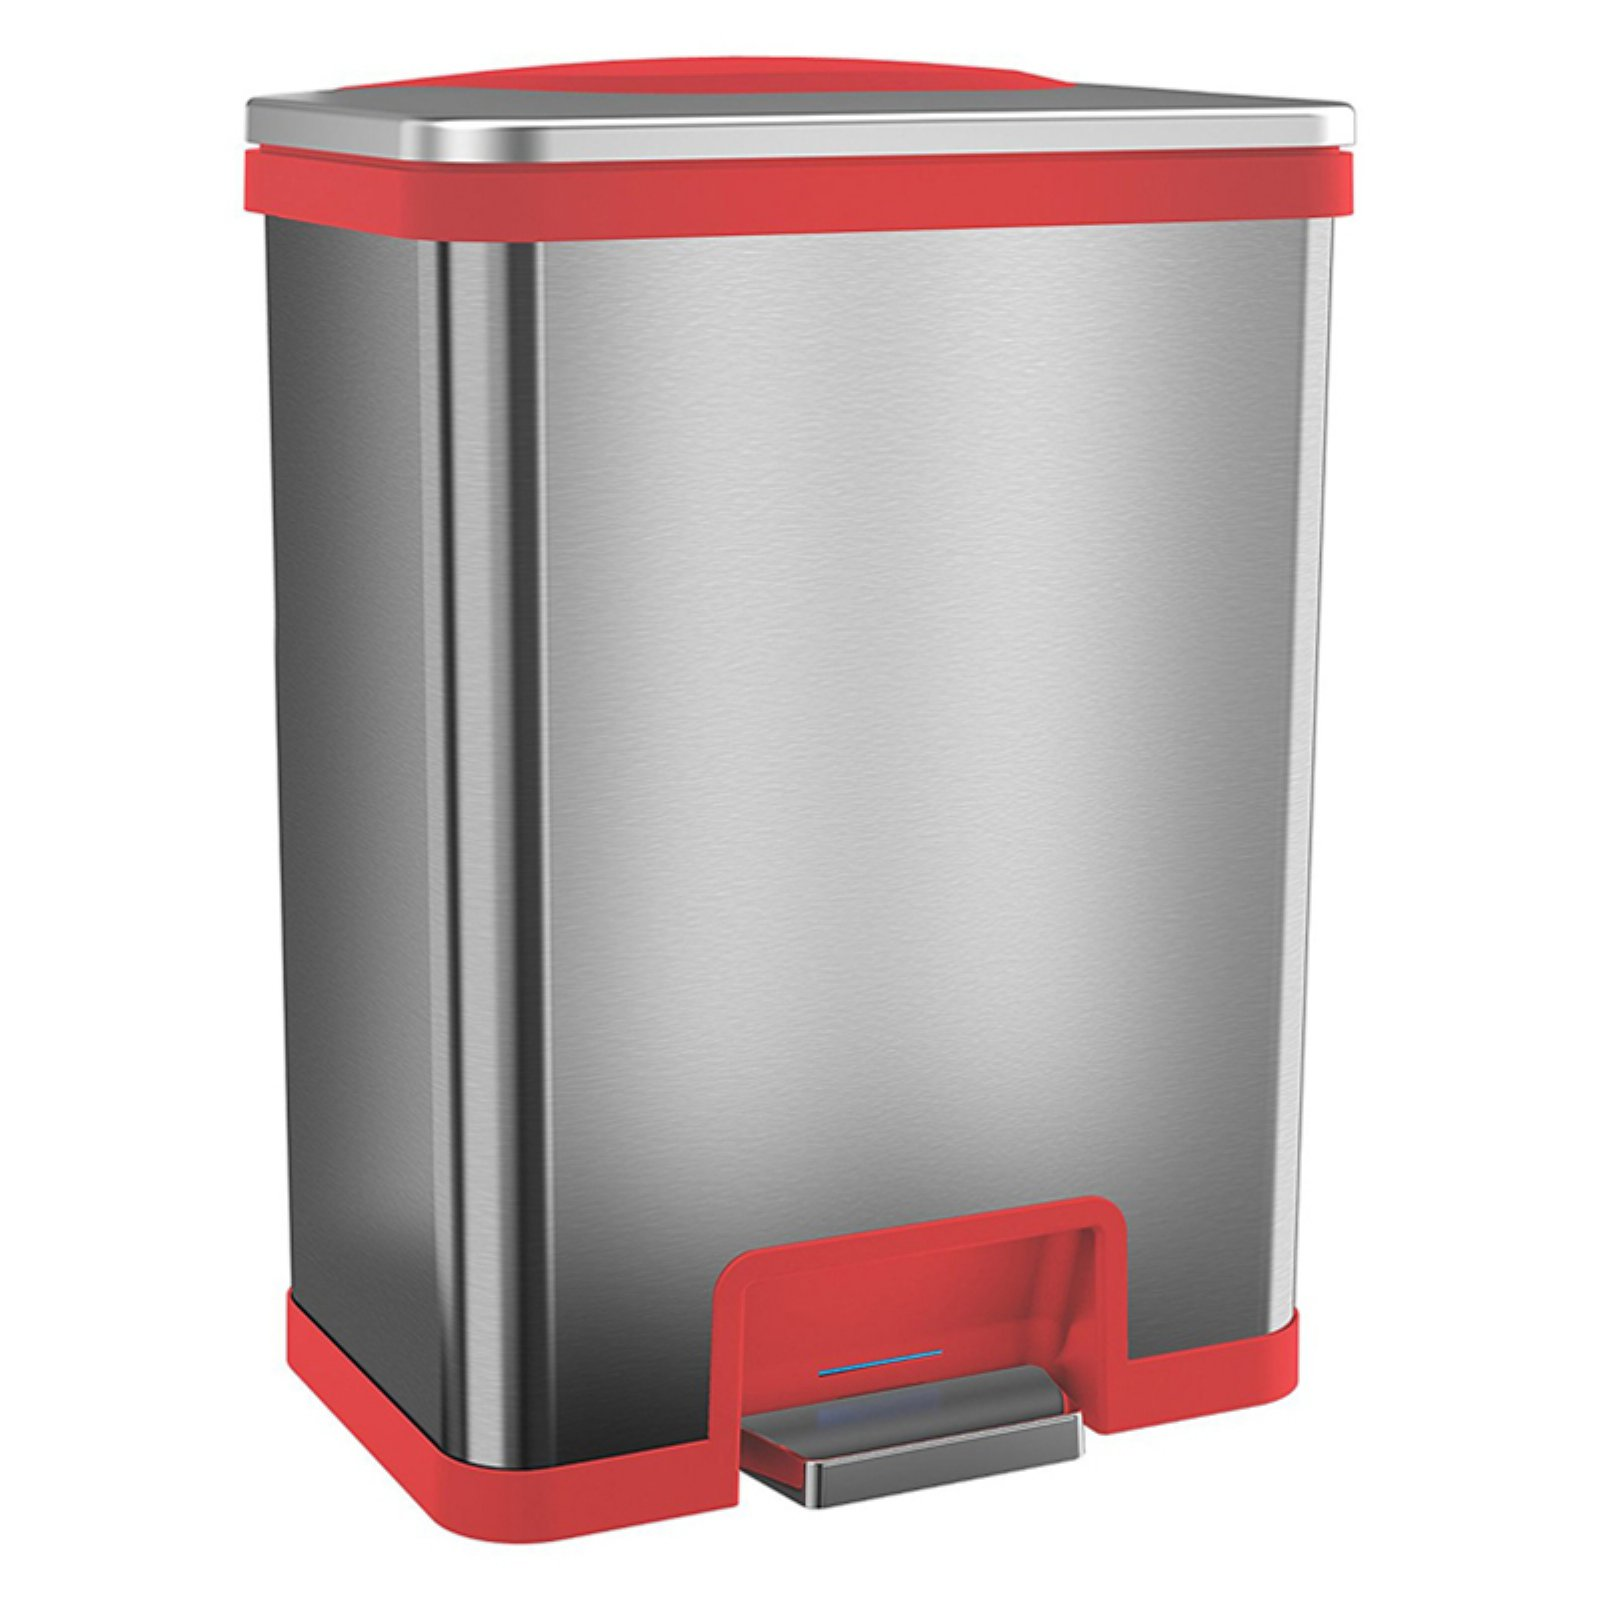 Halo Tapcan Automatic 13 Gallon Trash Can Red Products In